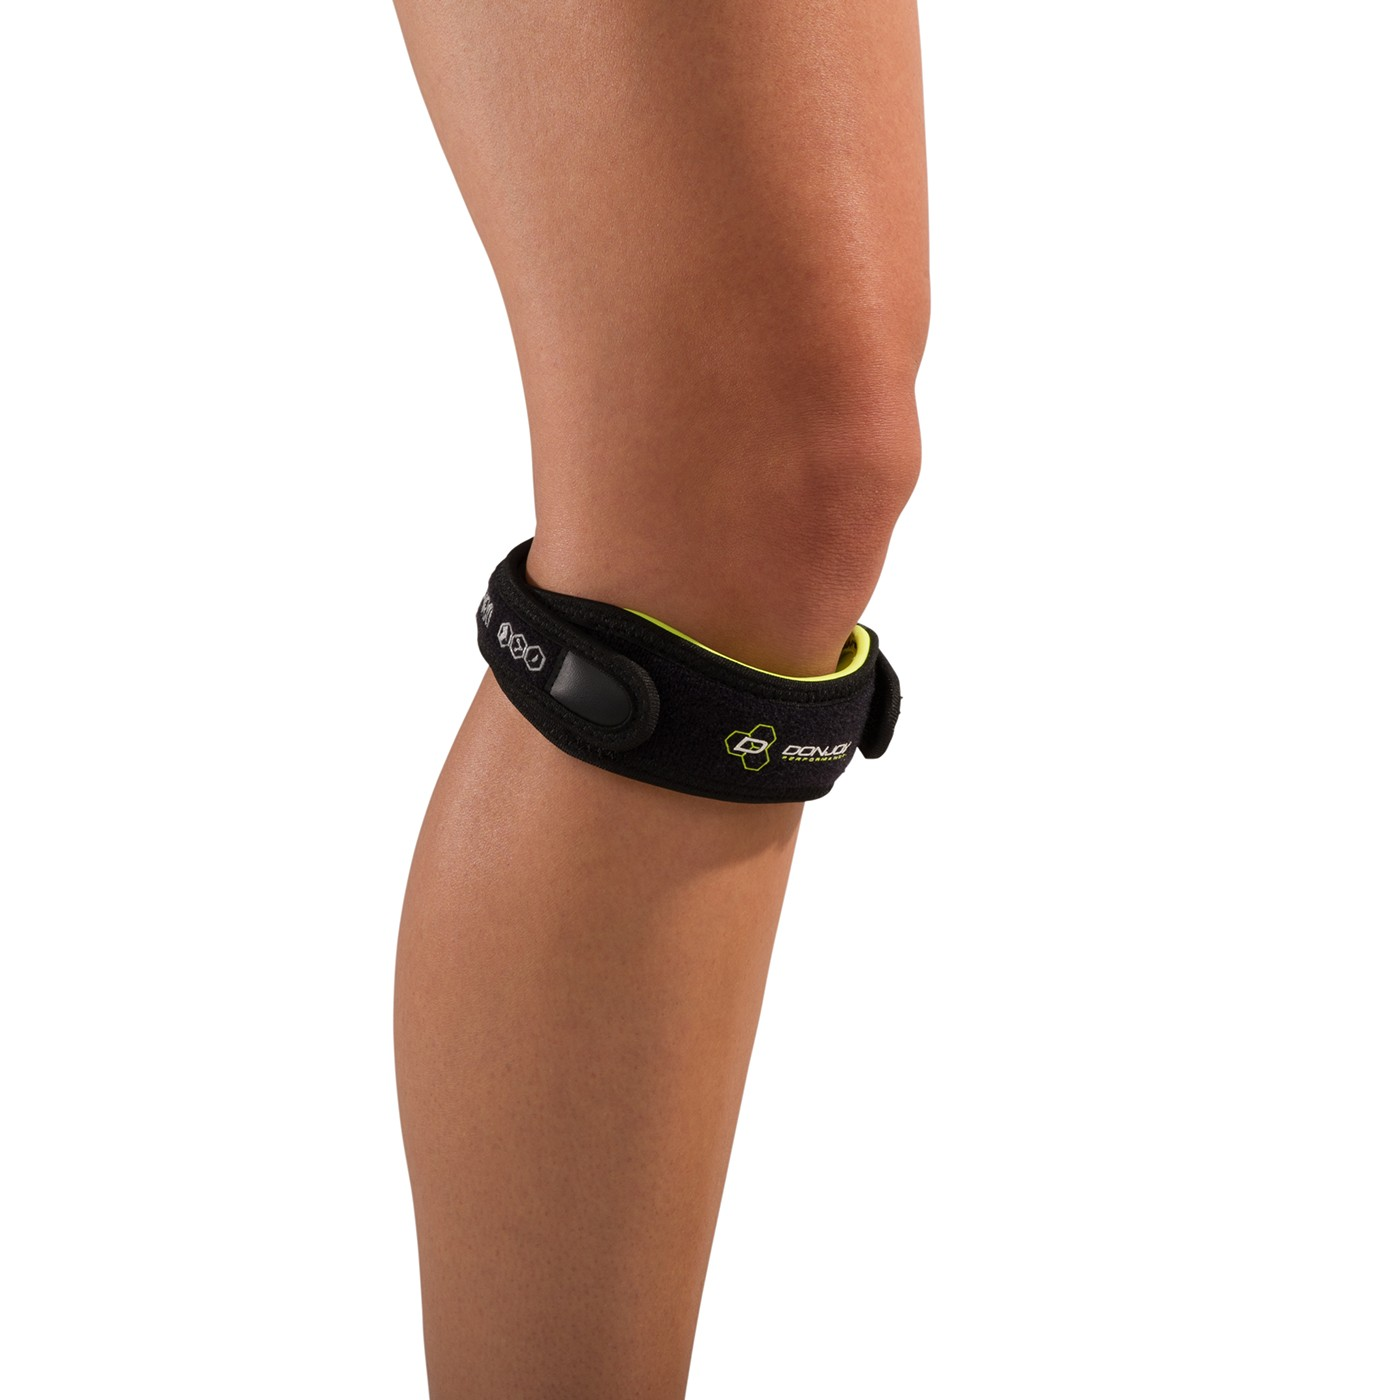 Anaform PinPoint Knee Strap - Front